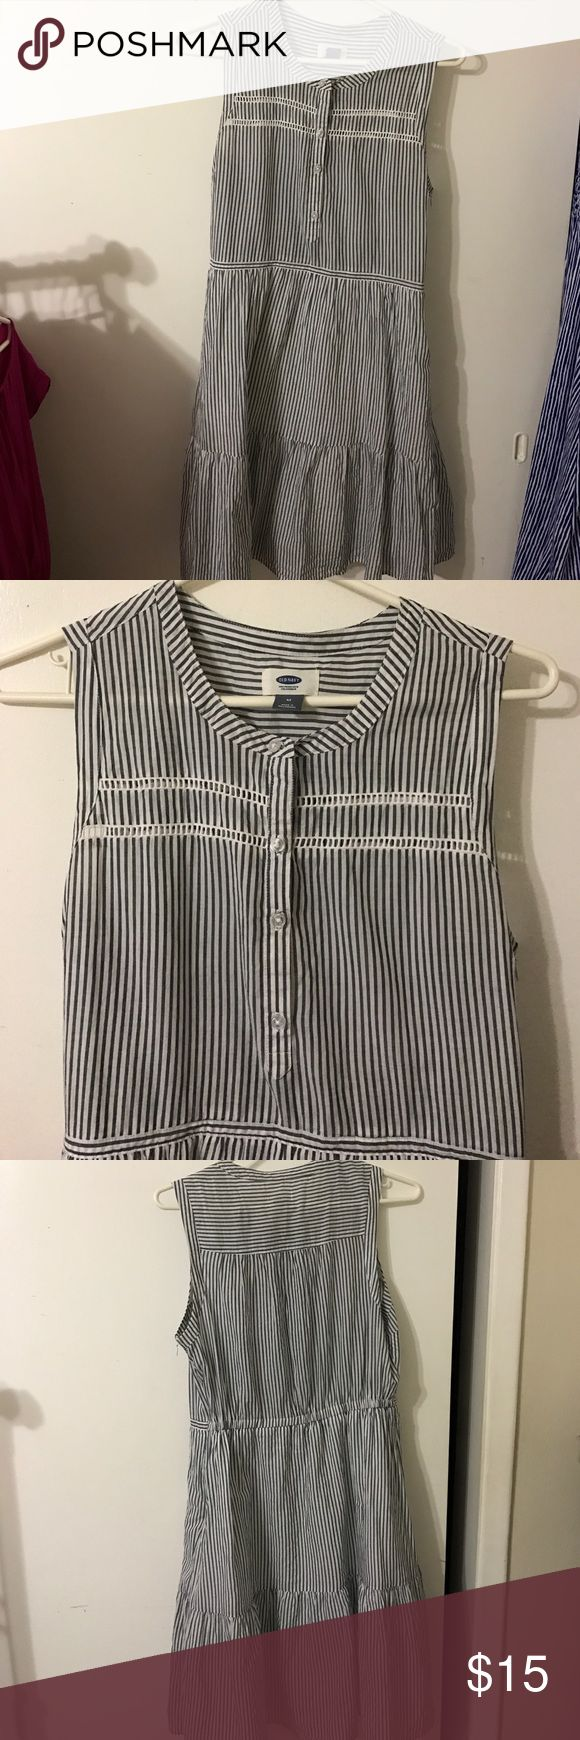 Old Navy Vertical Stripes Dress Lightly worn striped dress. The stripes are kind of gray. Very comfy and suitable for spring/summer! Old Navy Dresses Midi